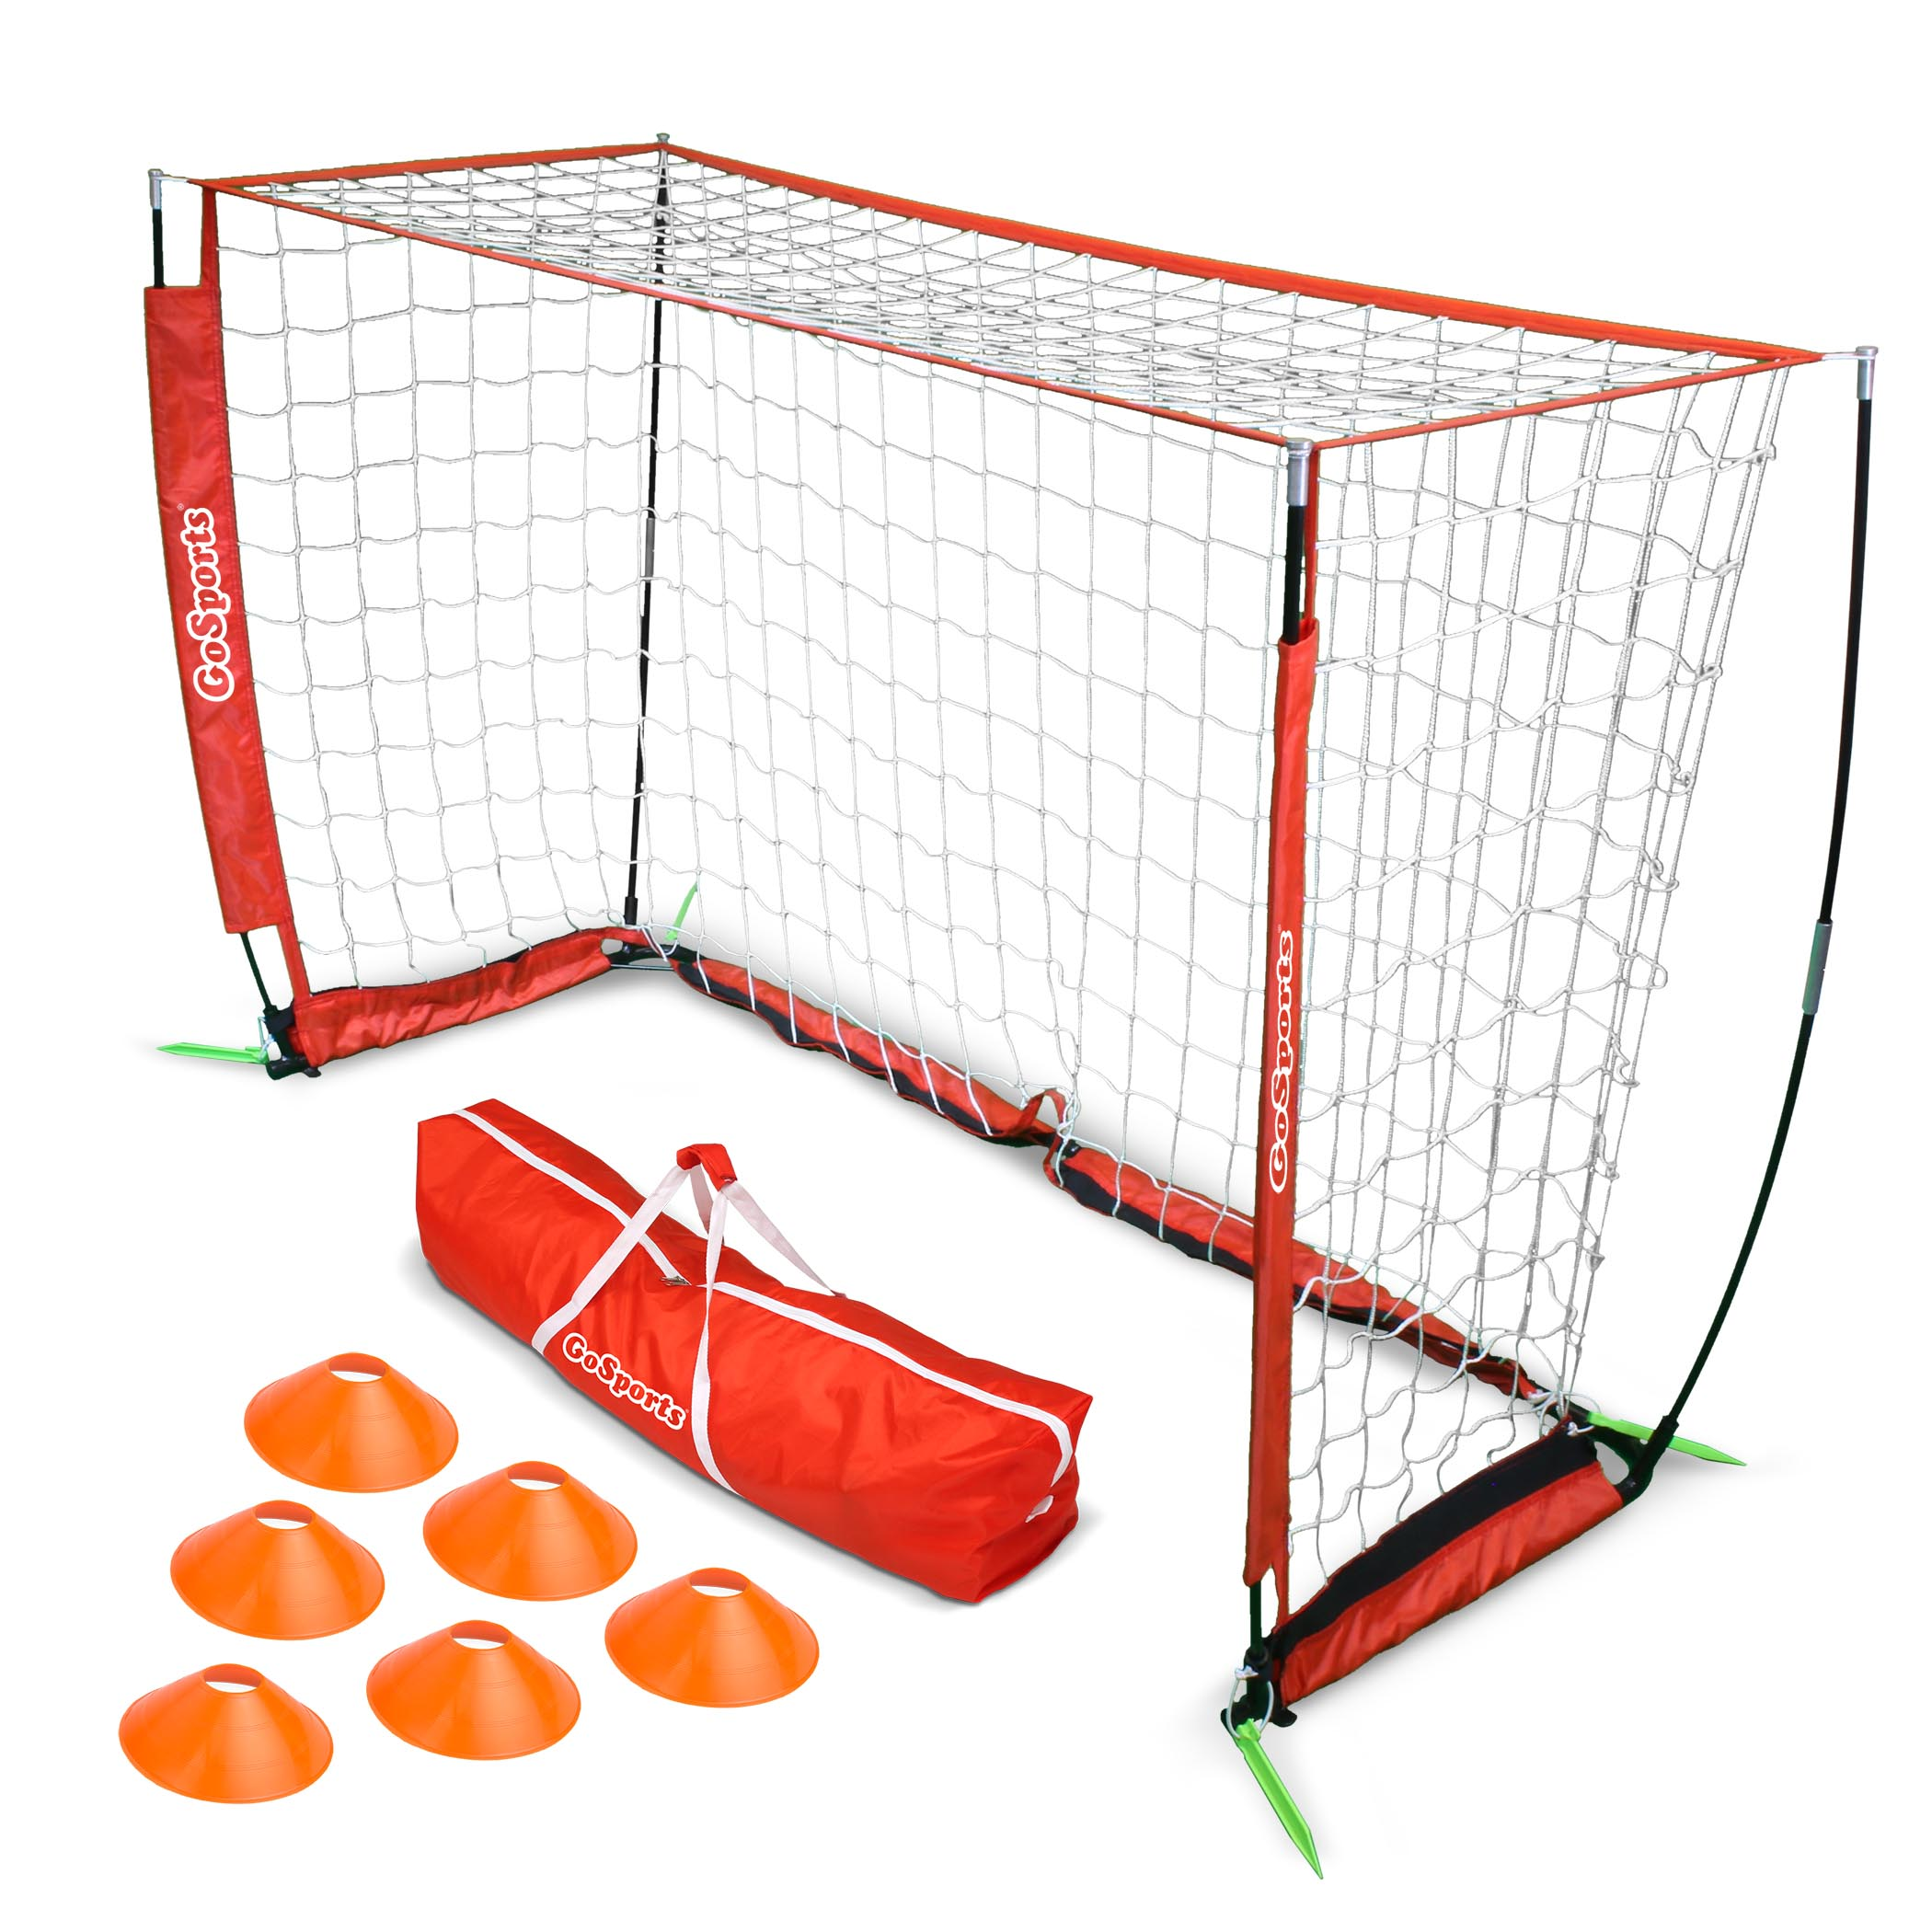 GoSports 6' Foldable ELITE Soccer Goal - Includes 1 6' Goal, 6 Cones & Portable Carrying Case